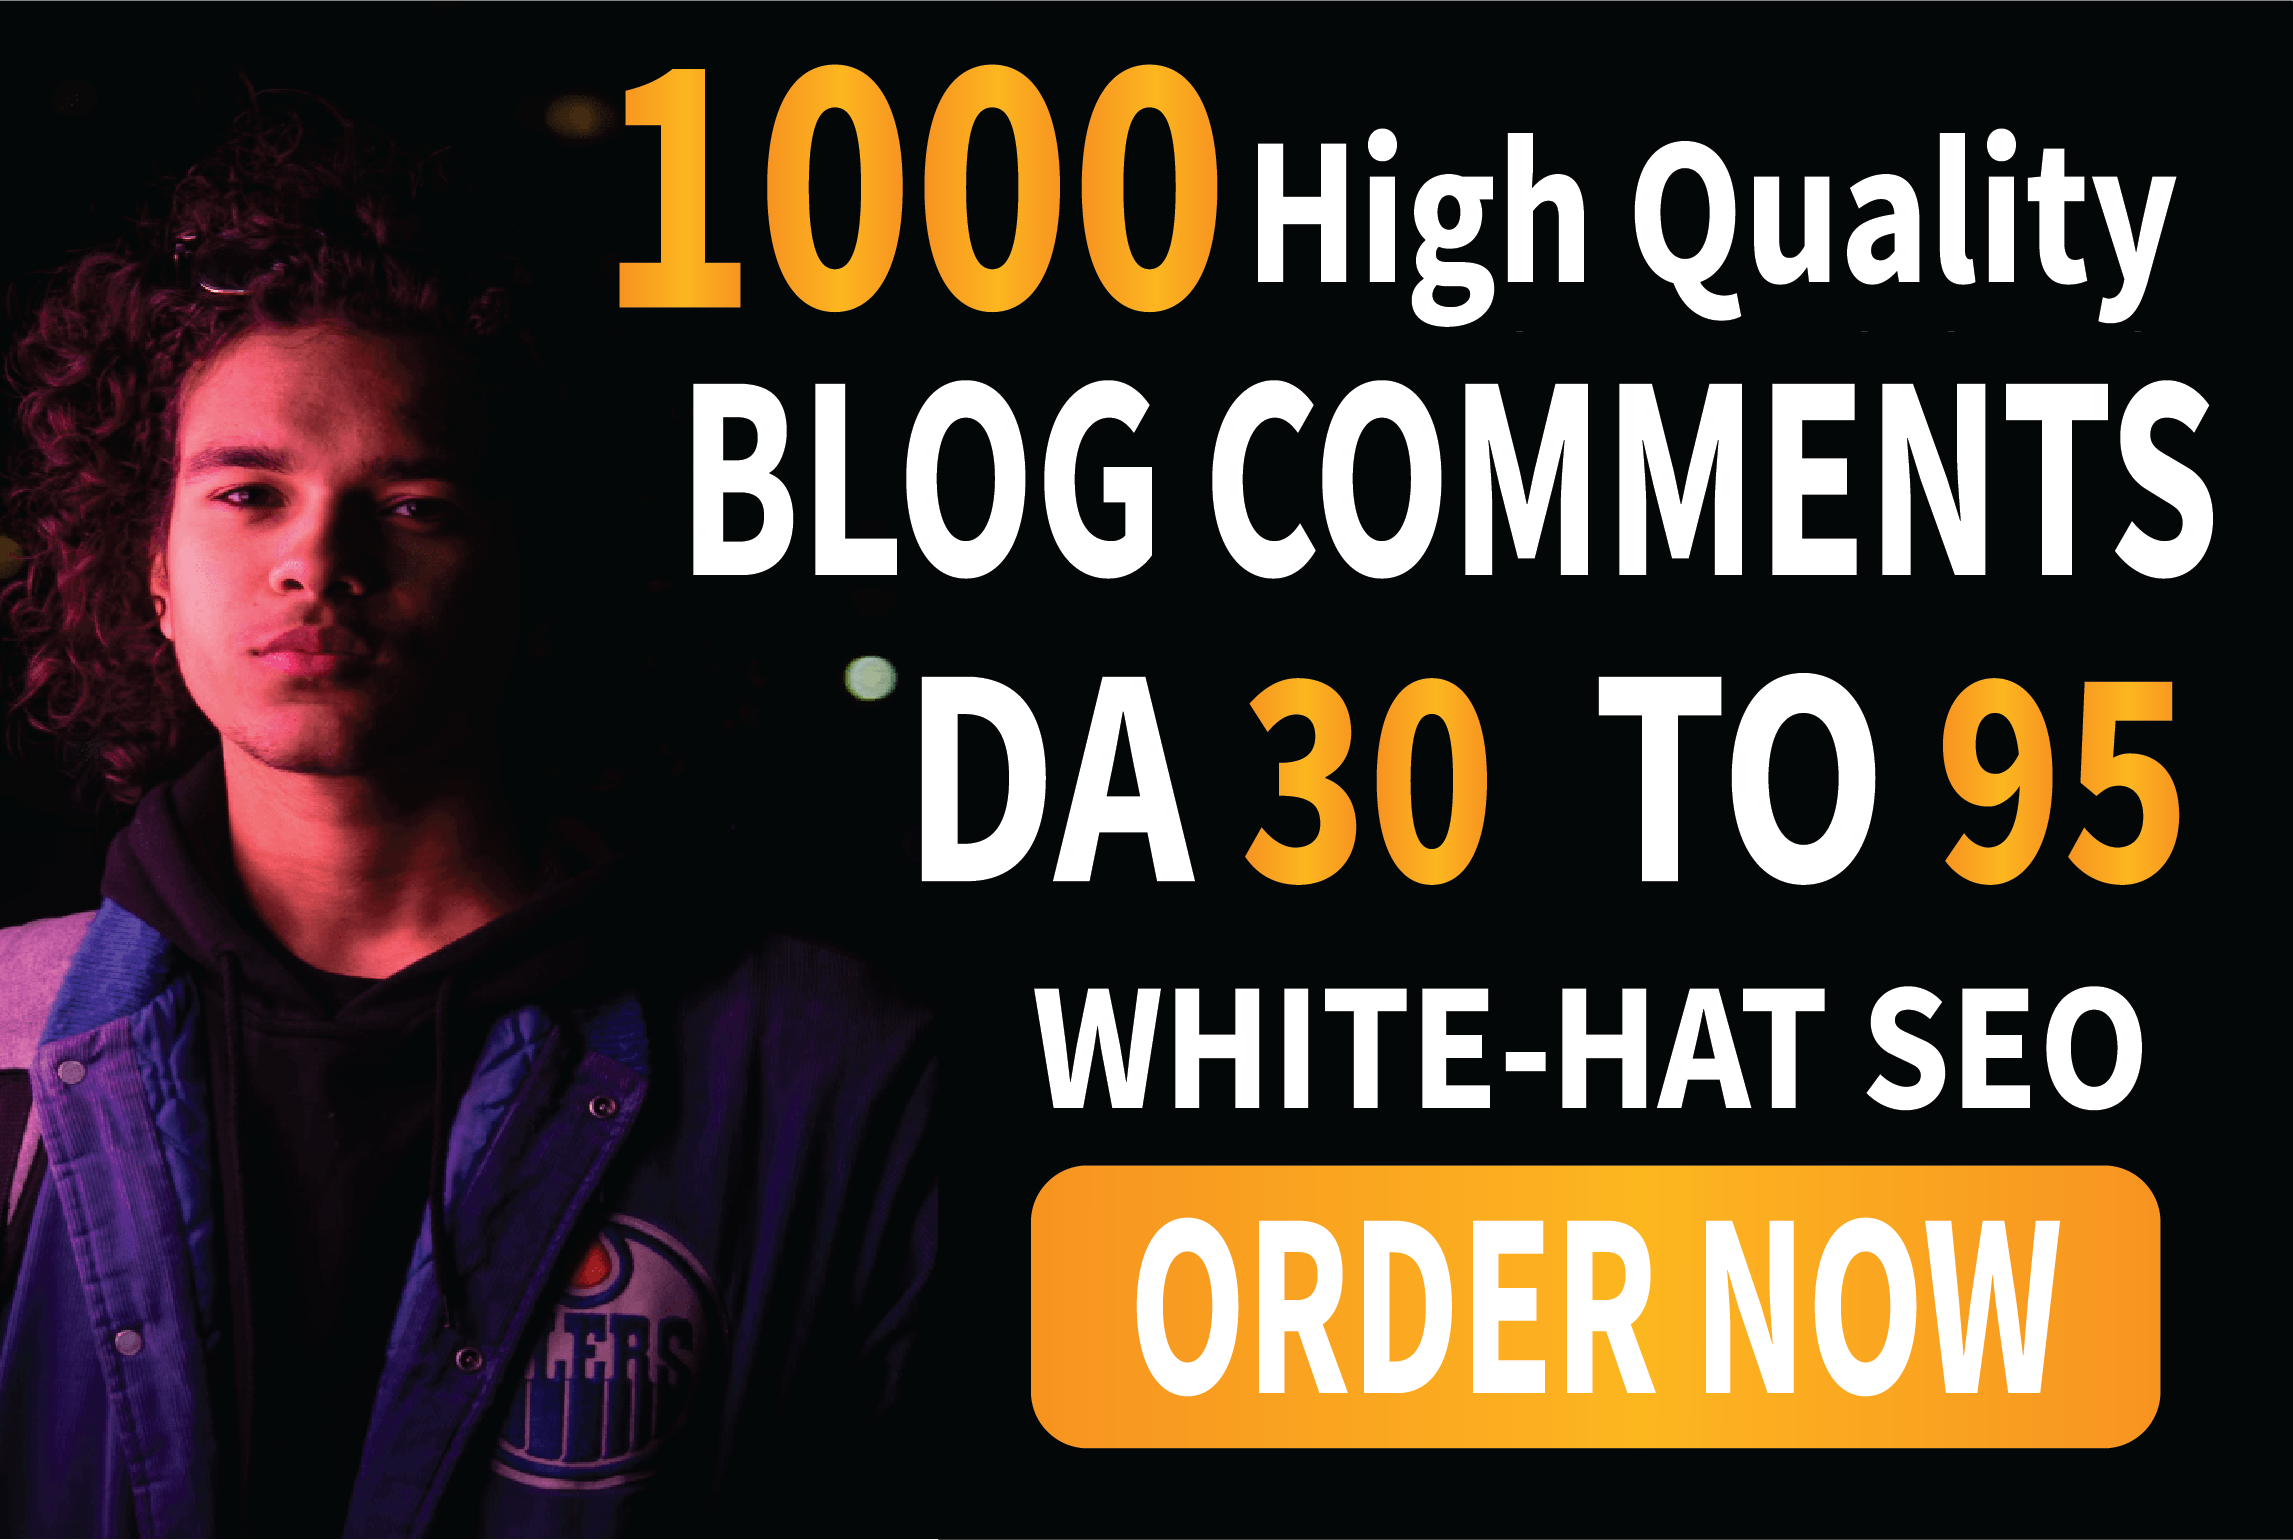 I will build high quality backlinks using blog comments